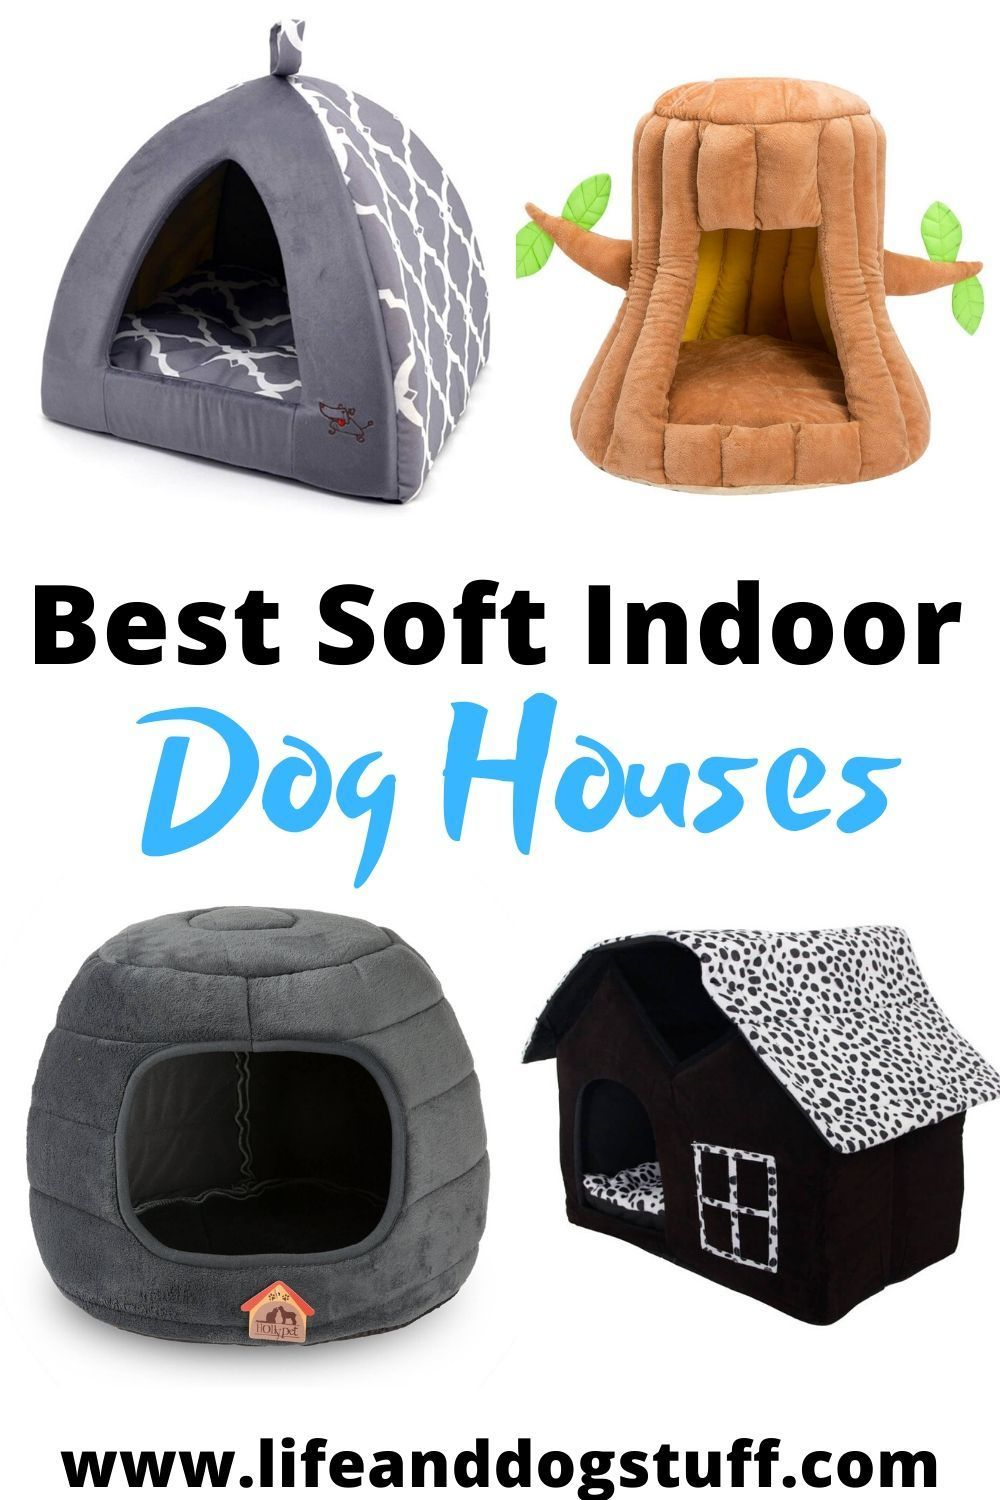 10 Best Soft Indoor Dog Houses For Small Dogs Dog Houses Small